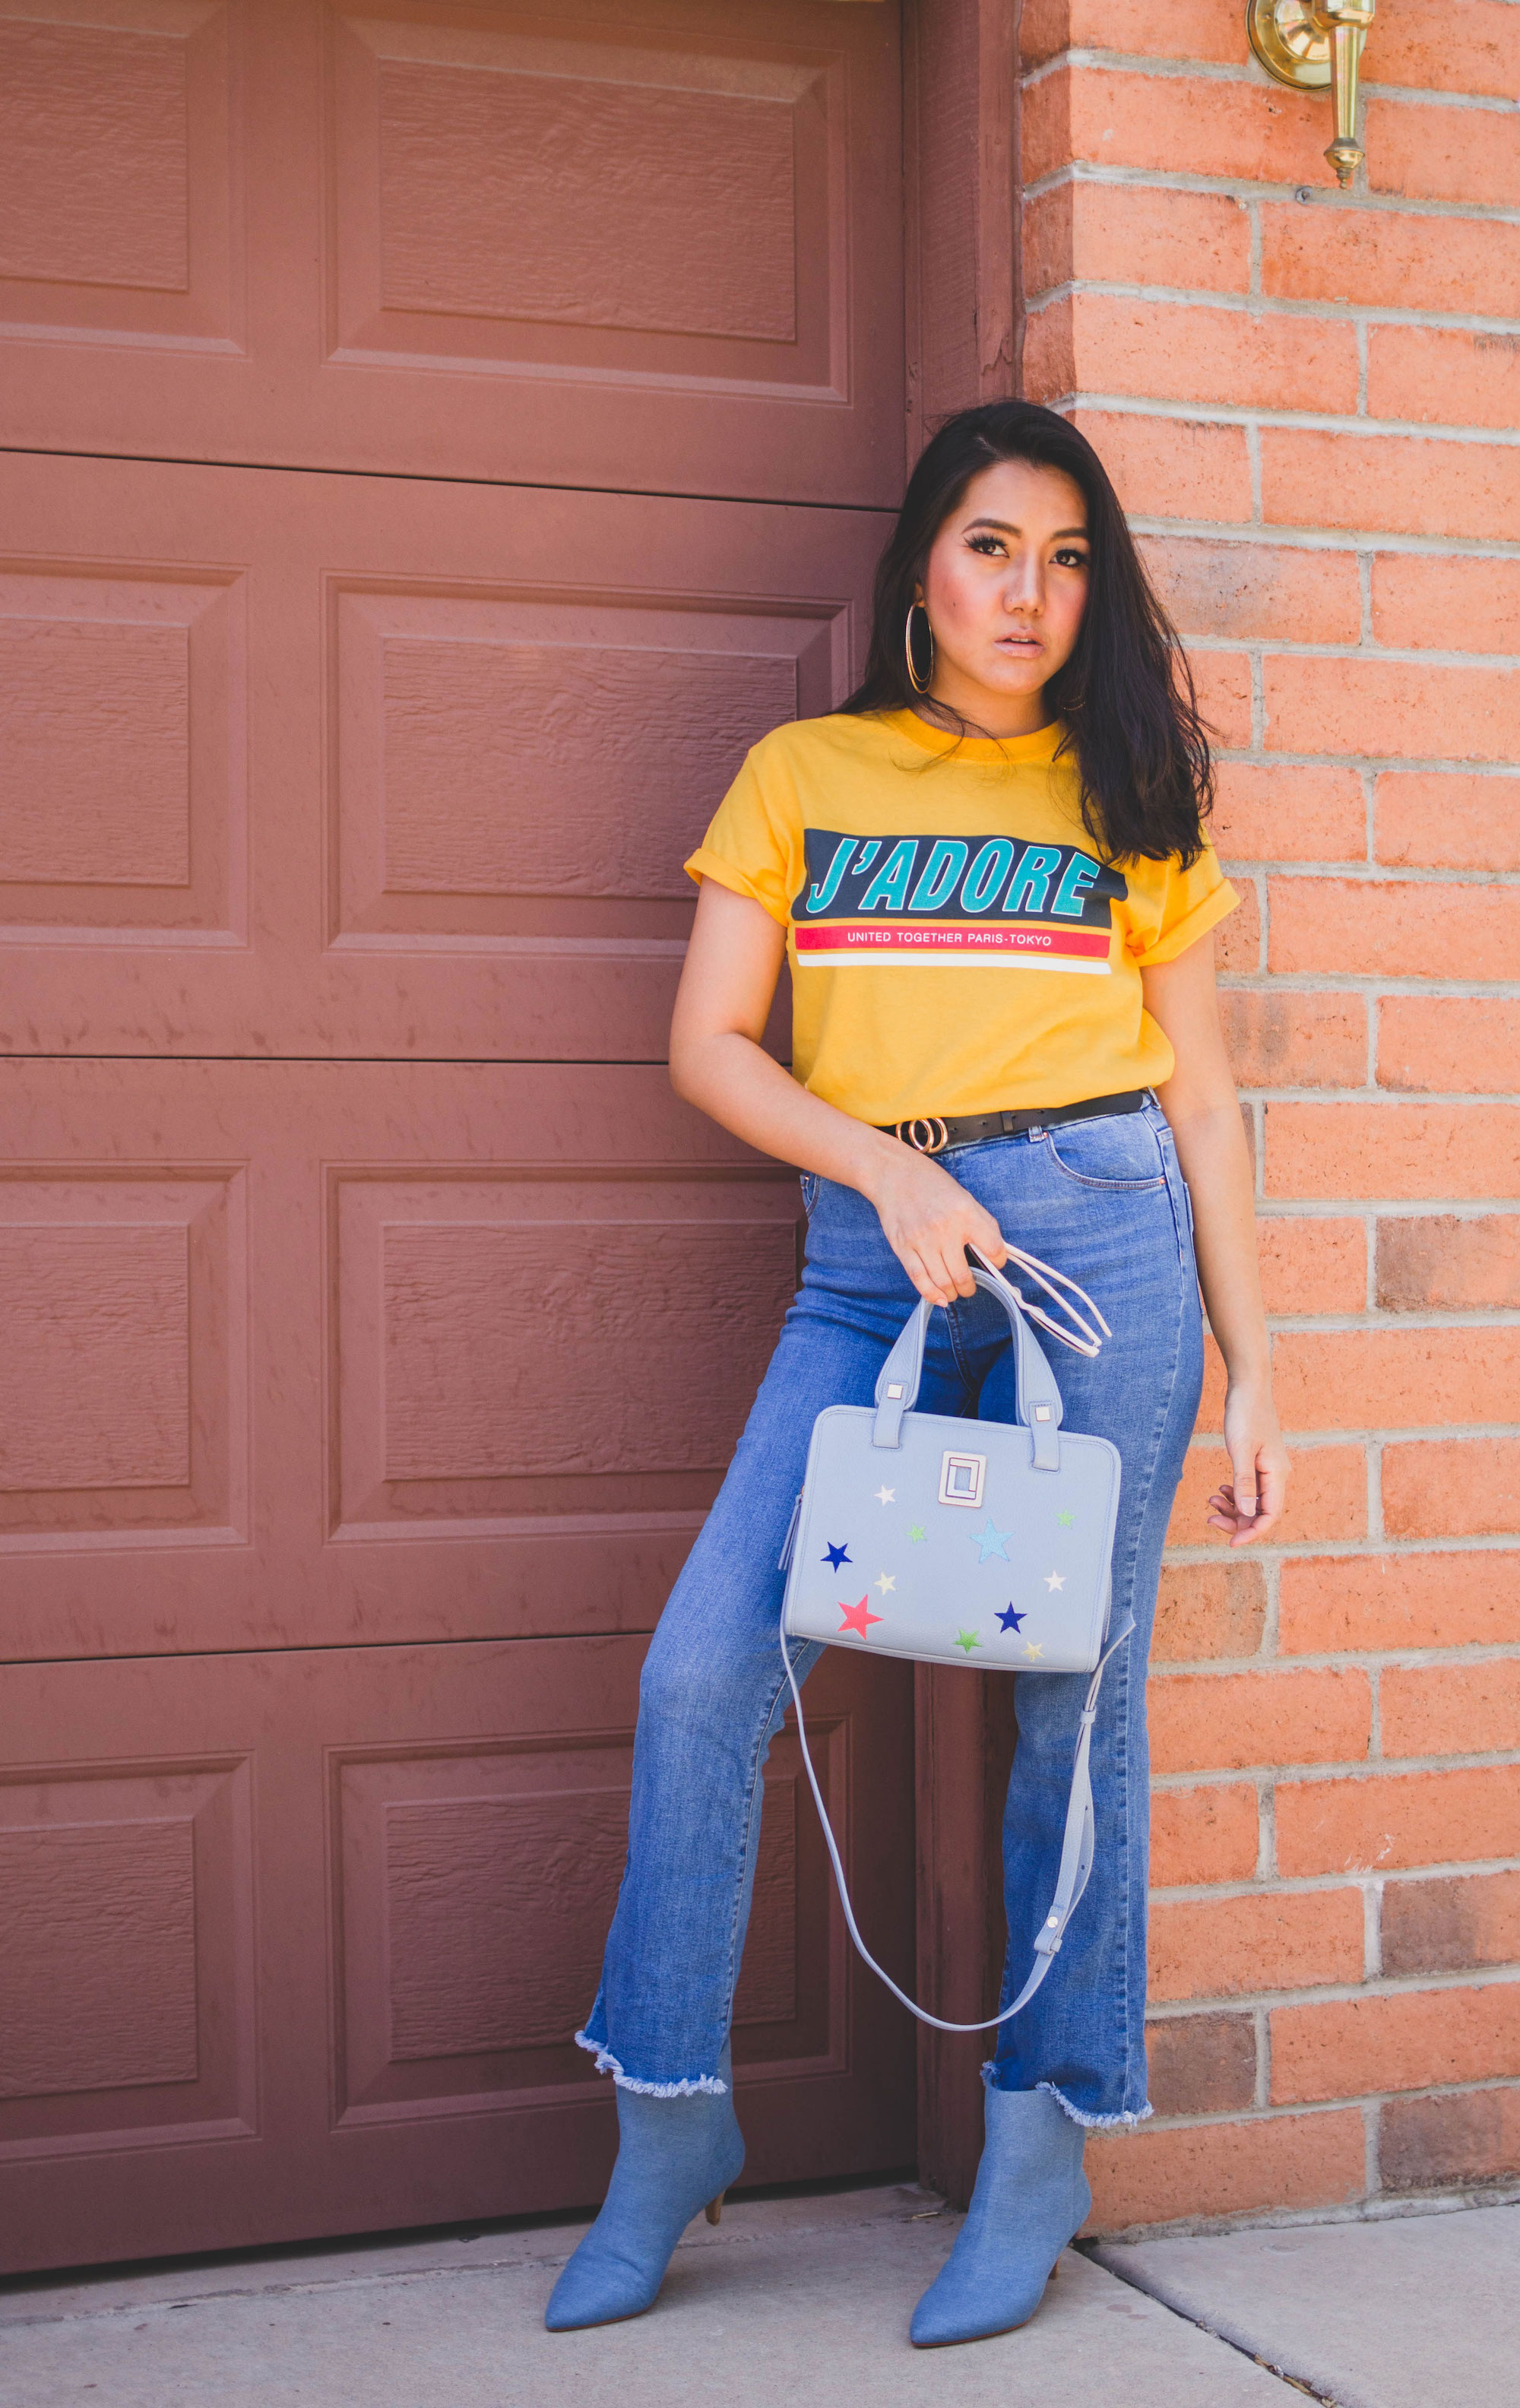 Arizona Fashion blogger Molly Larsen Wearing yellow J'ADORE Tee with blue denim jeans